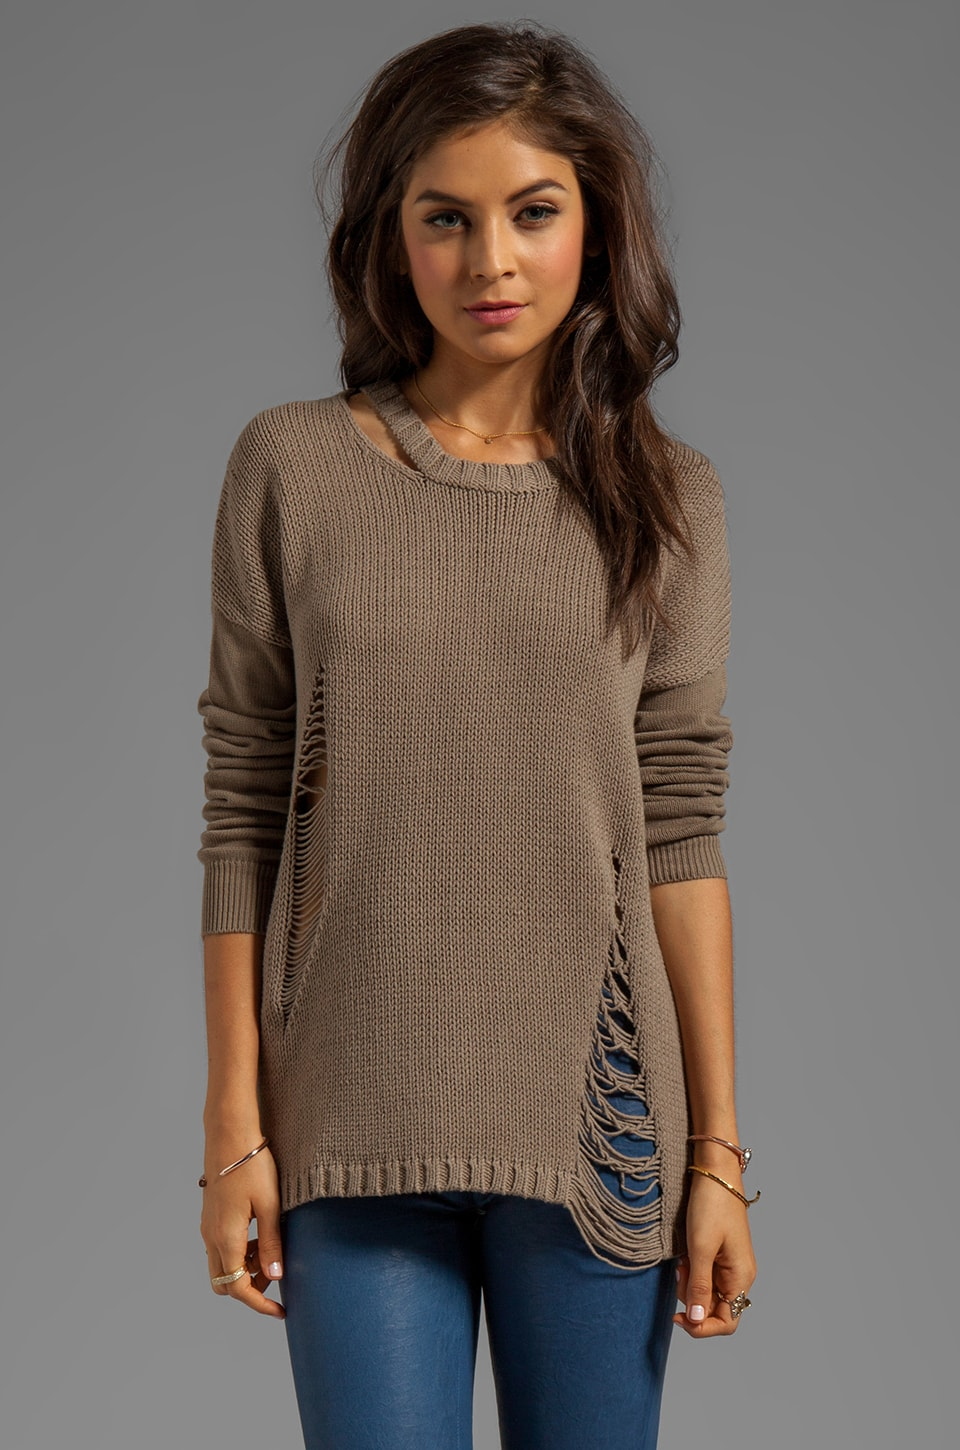 Central Park West Mesa Shredding Pullover in Taupe